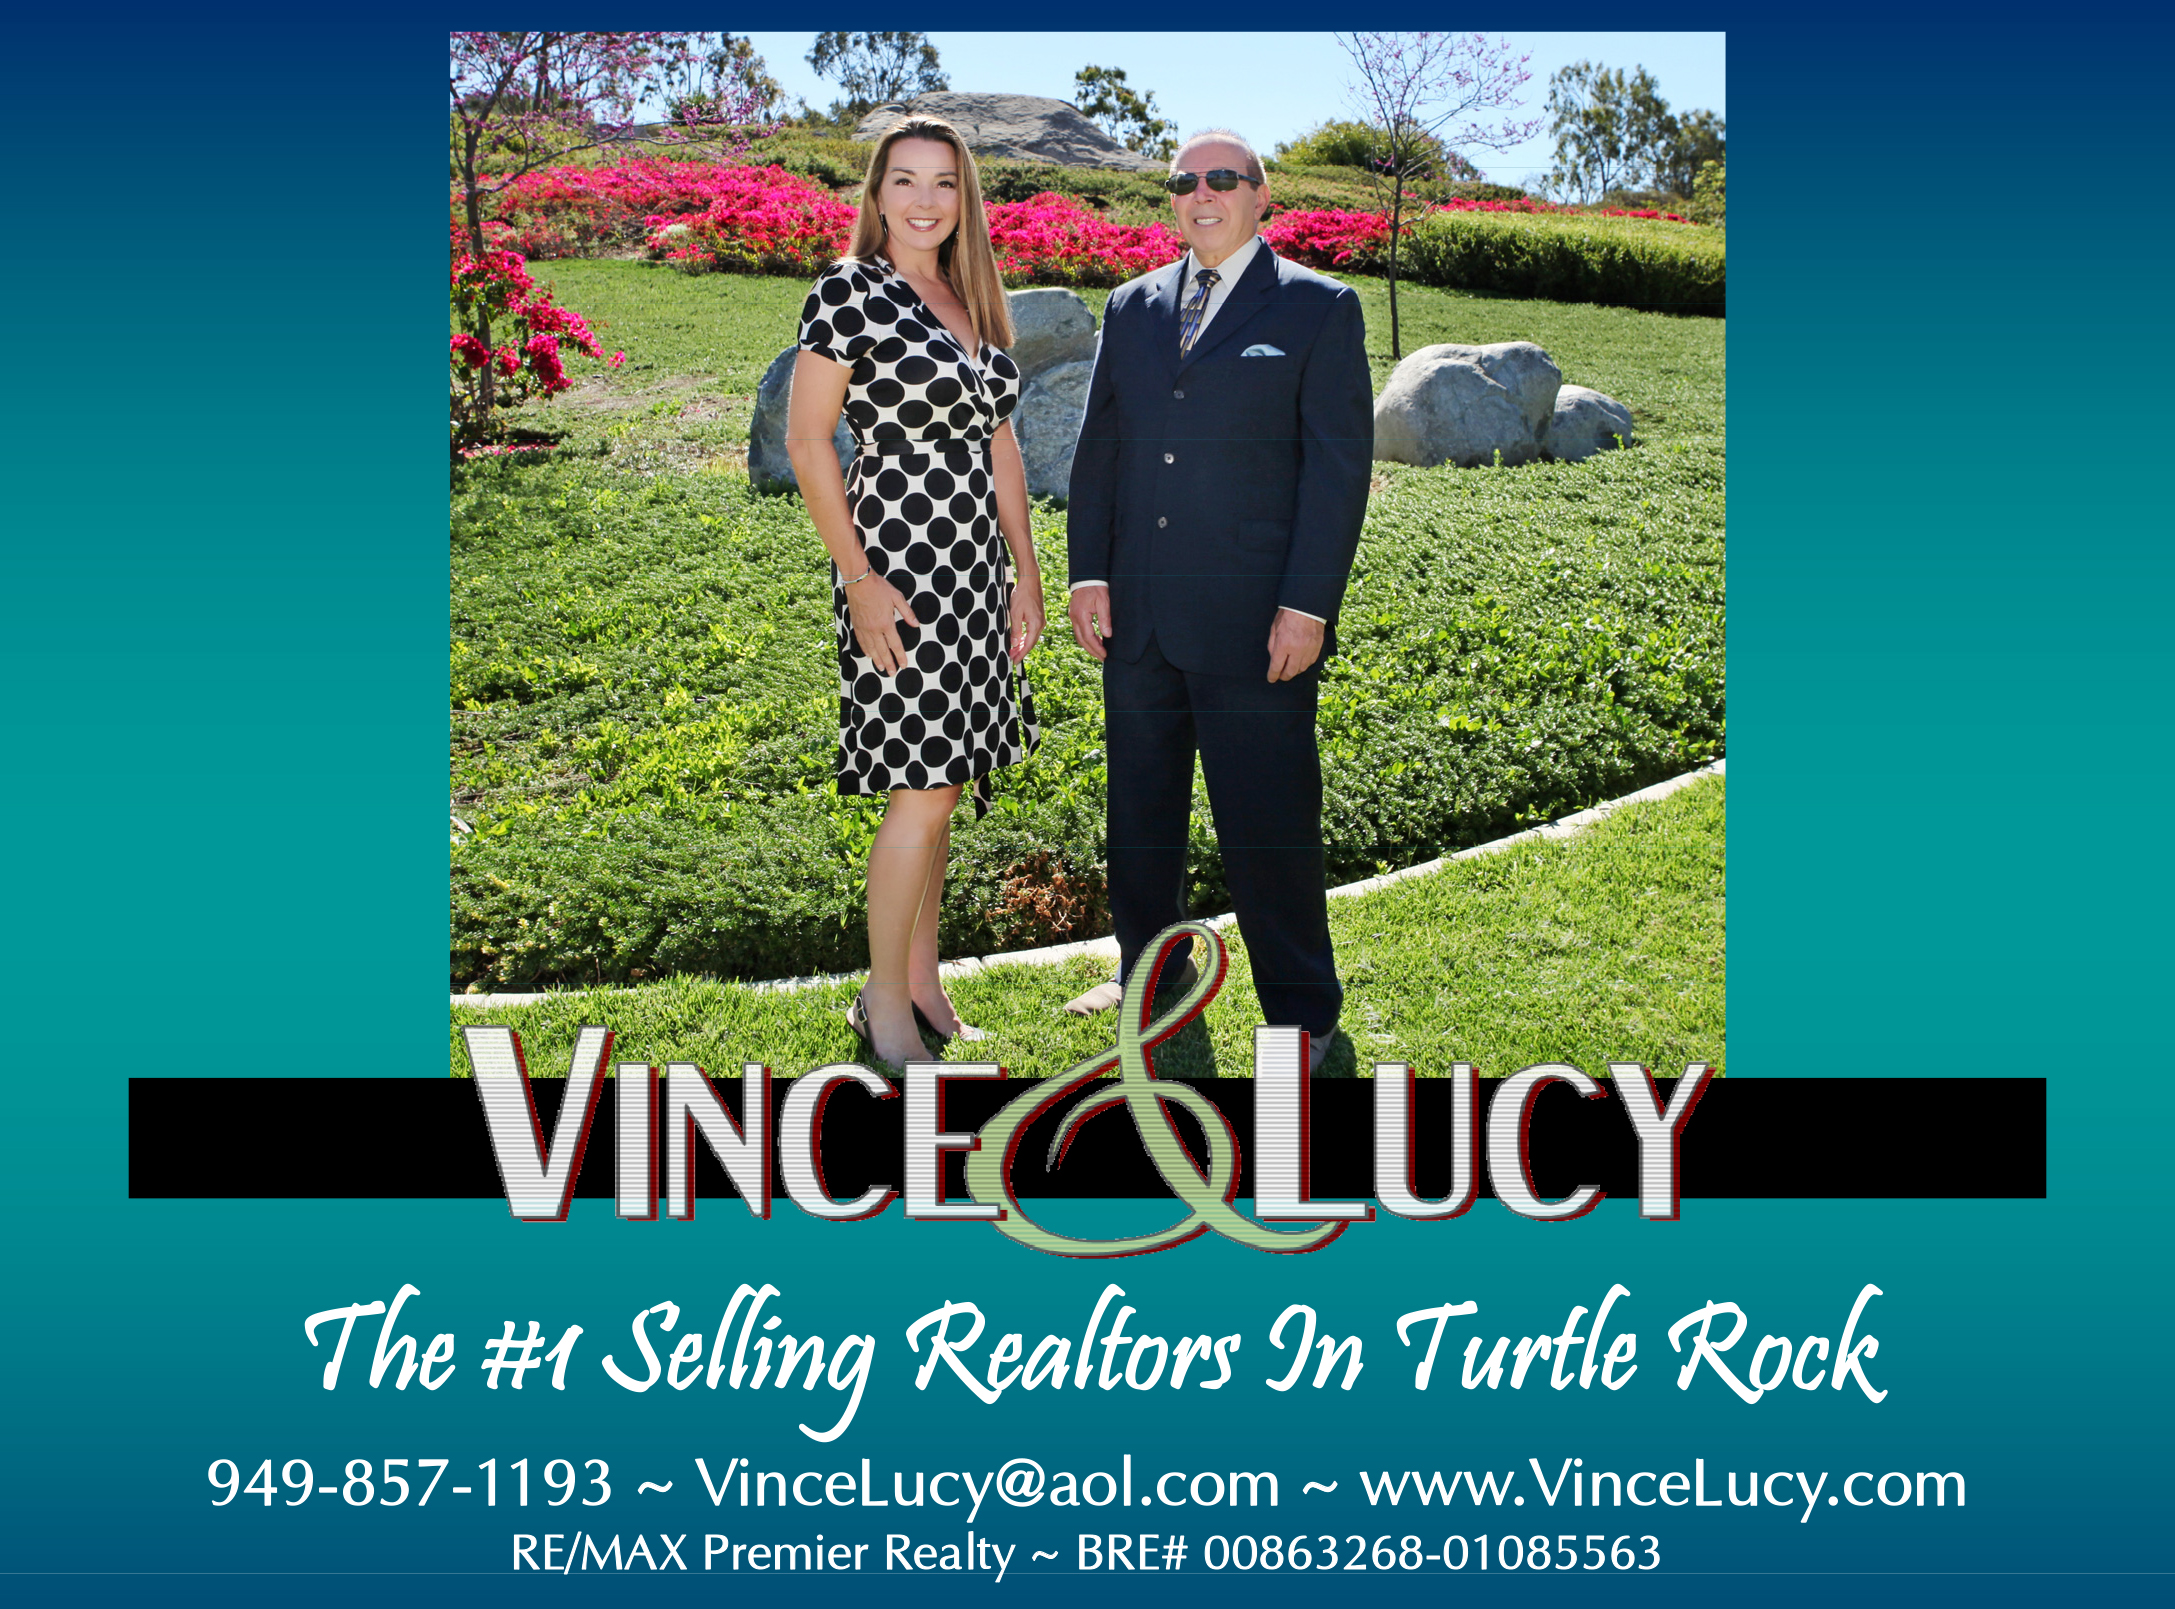 67 l Vince & Lucy l Full Page